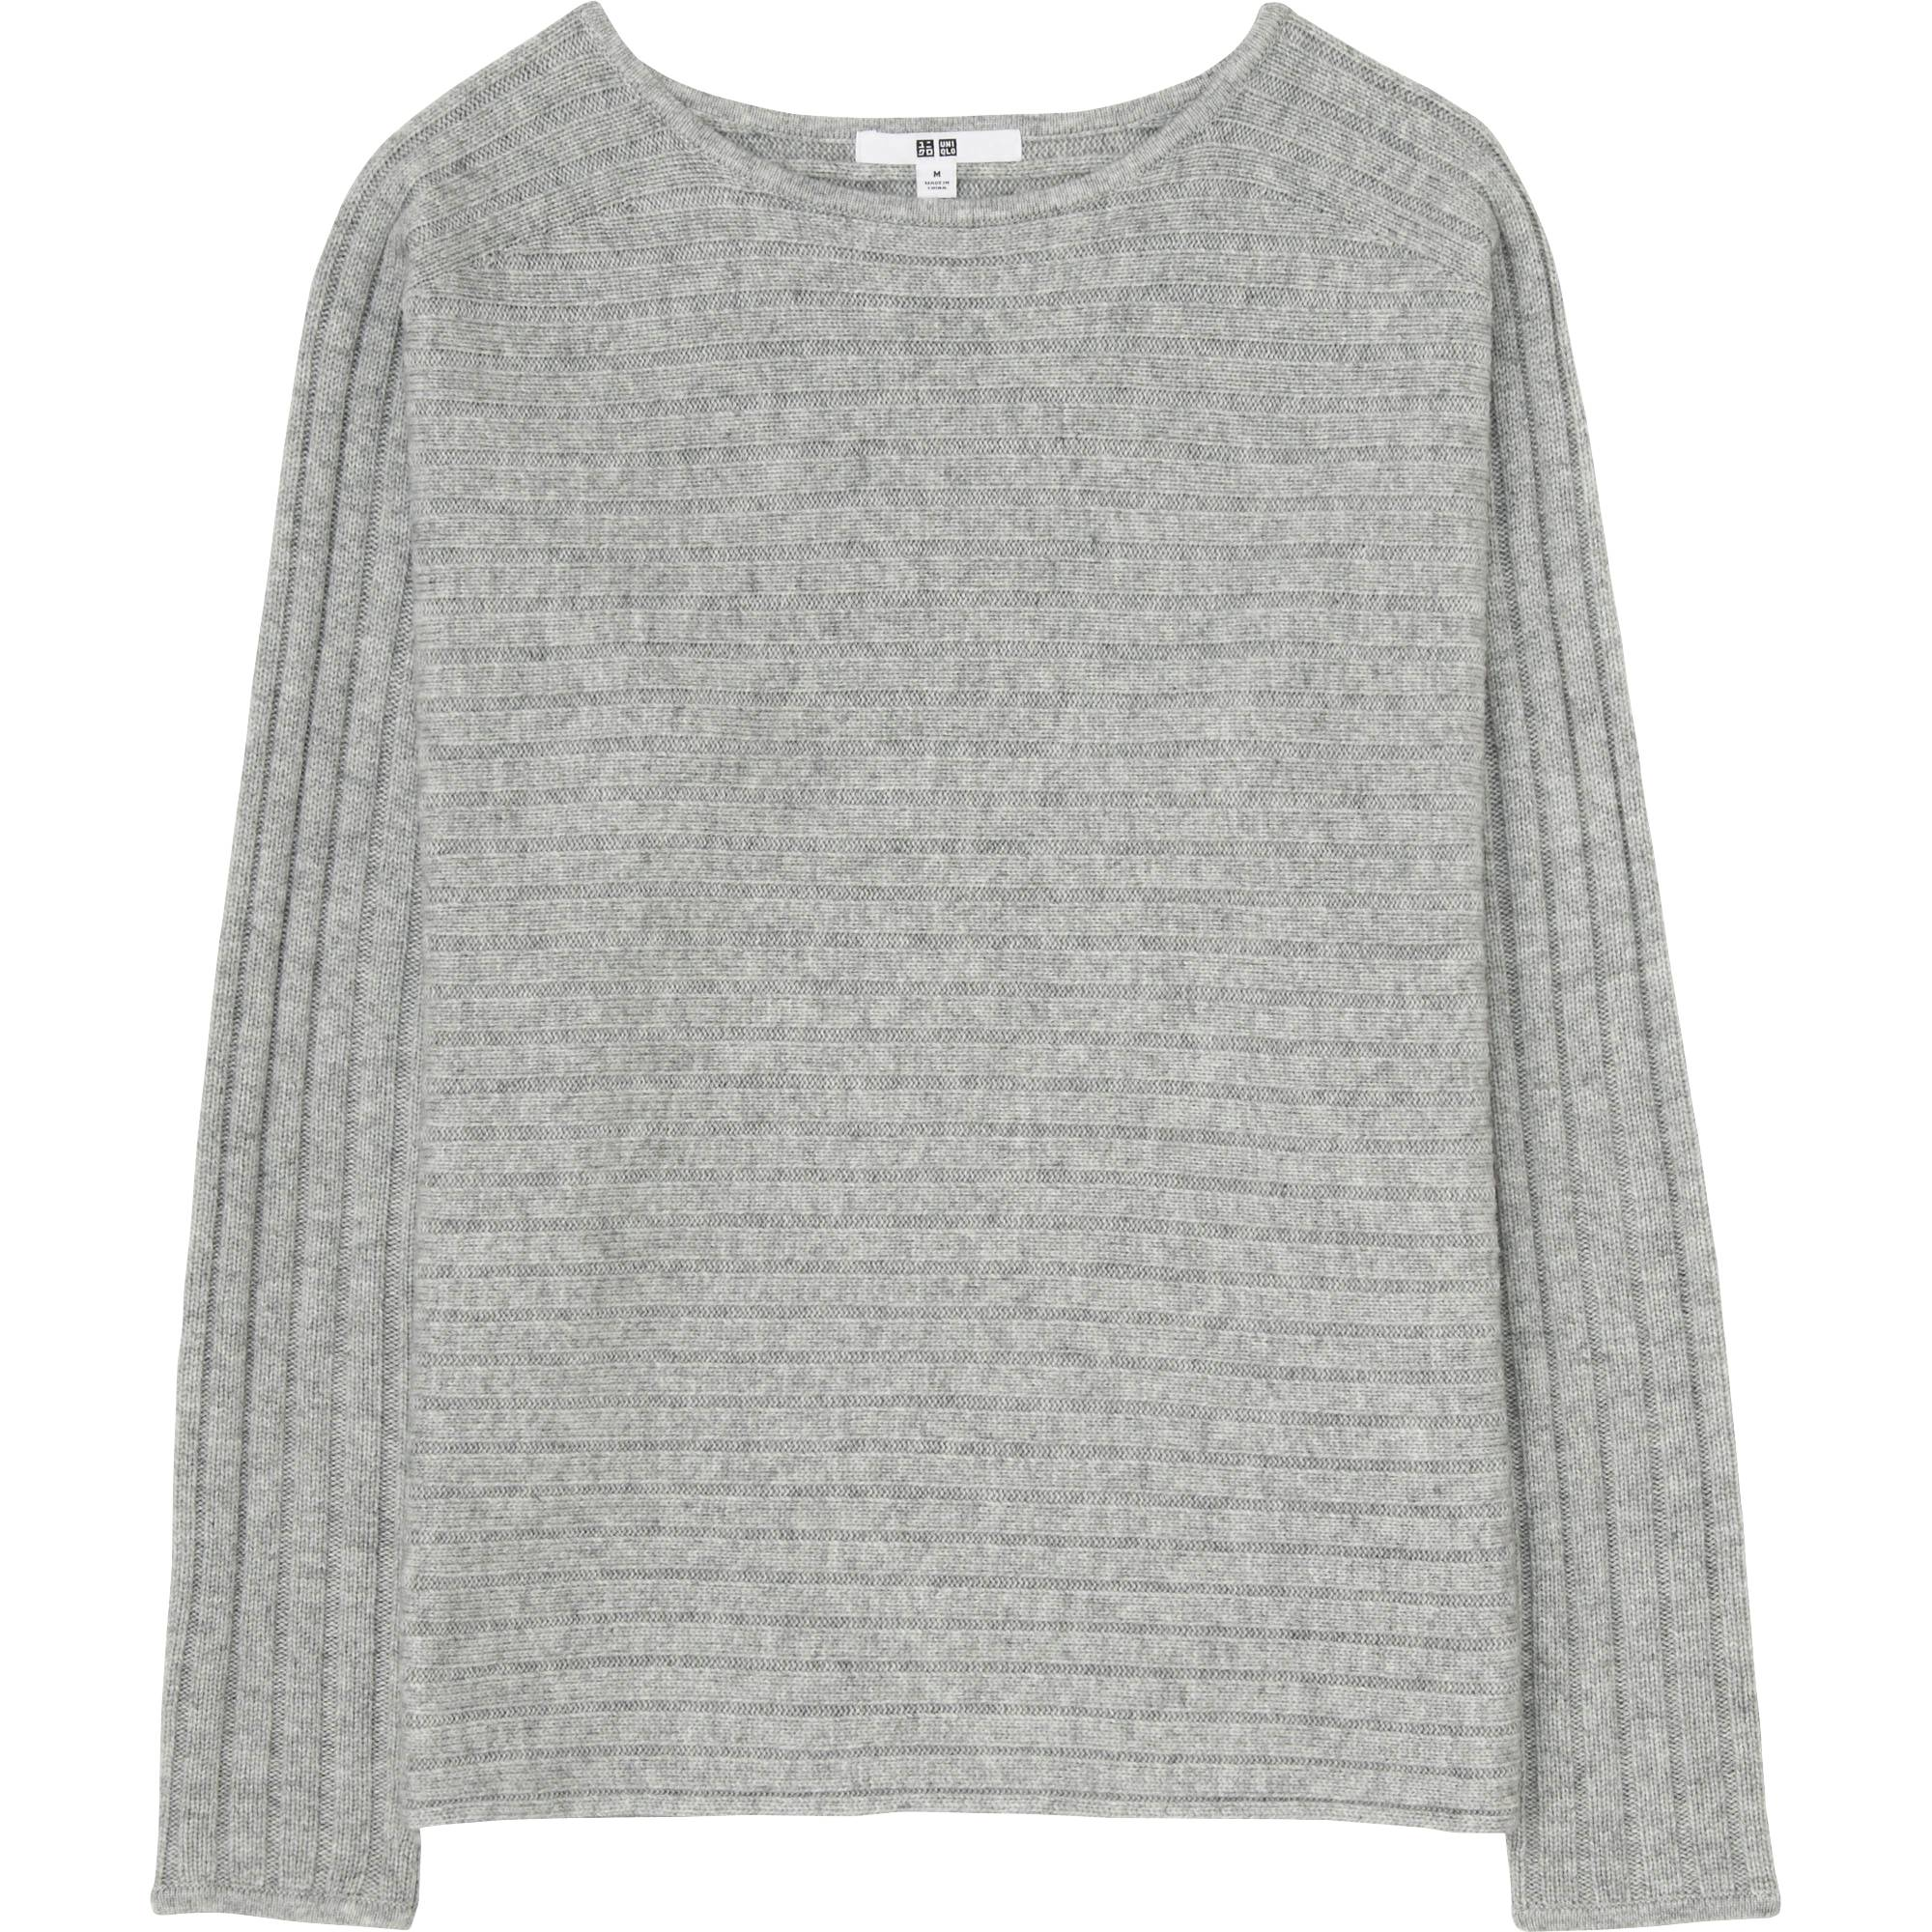 WOMEN CASHMERE BLEND BOAT NECK SWEATER | UNIQLO US